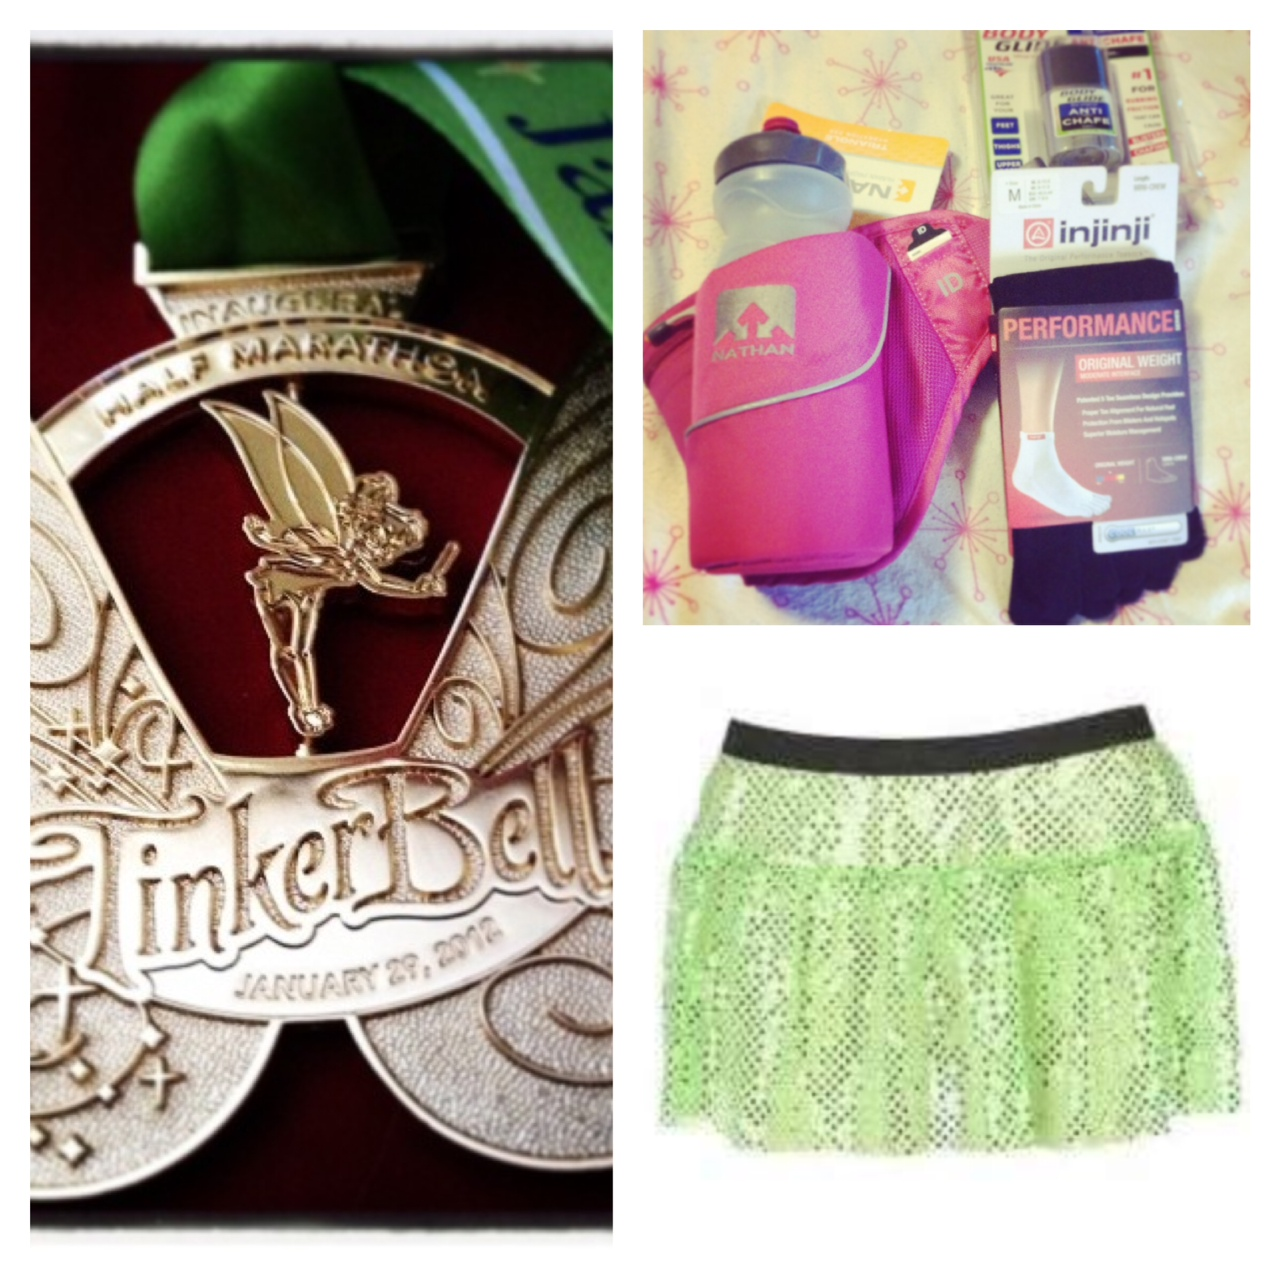 Training for the Tinkerbell Half Marathon